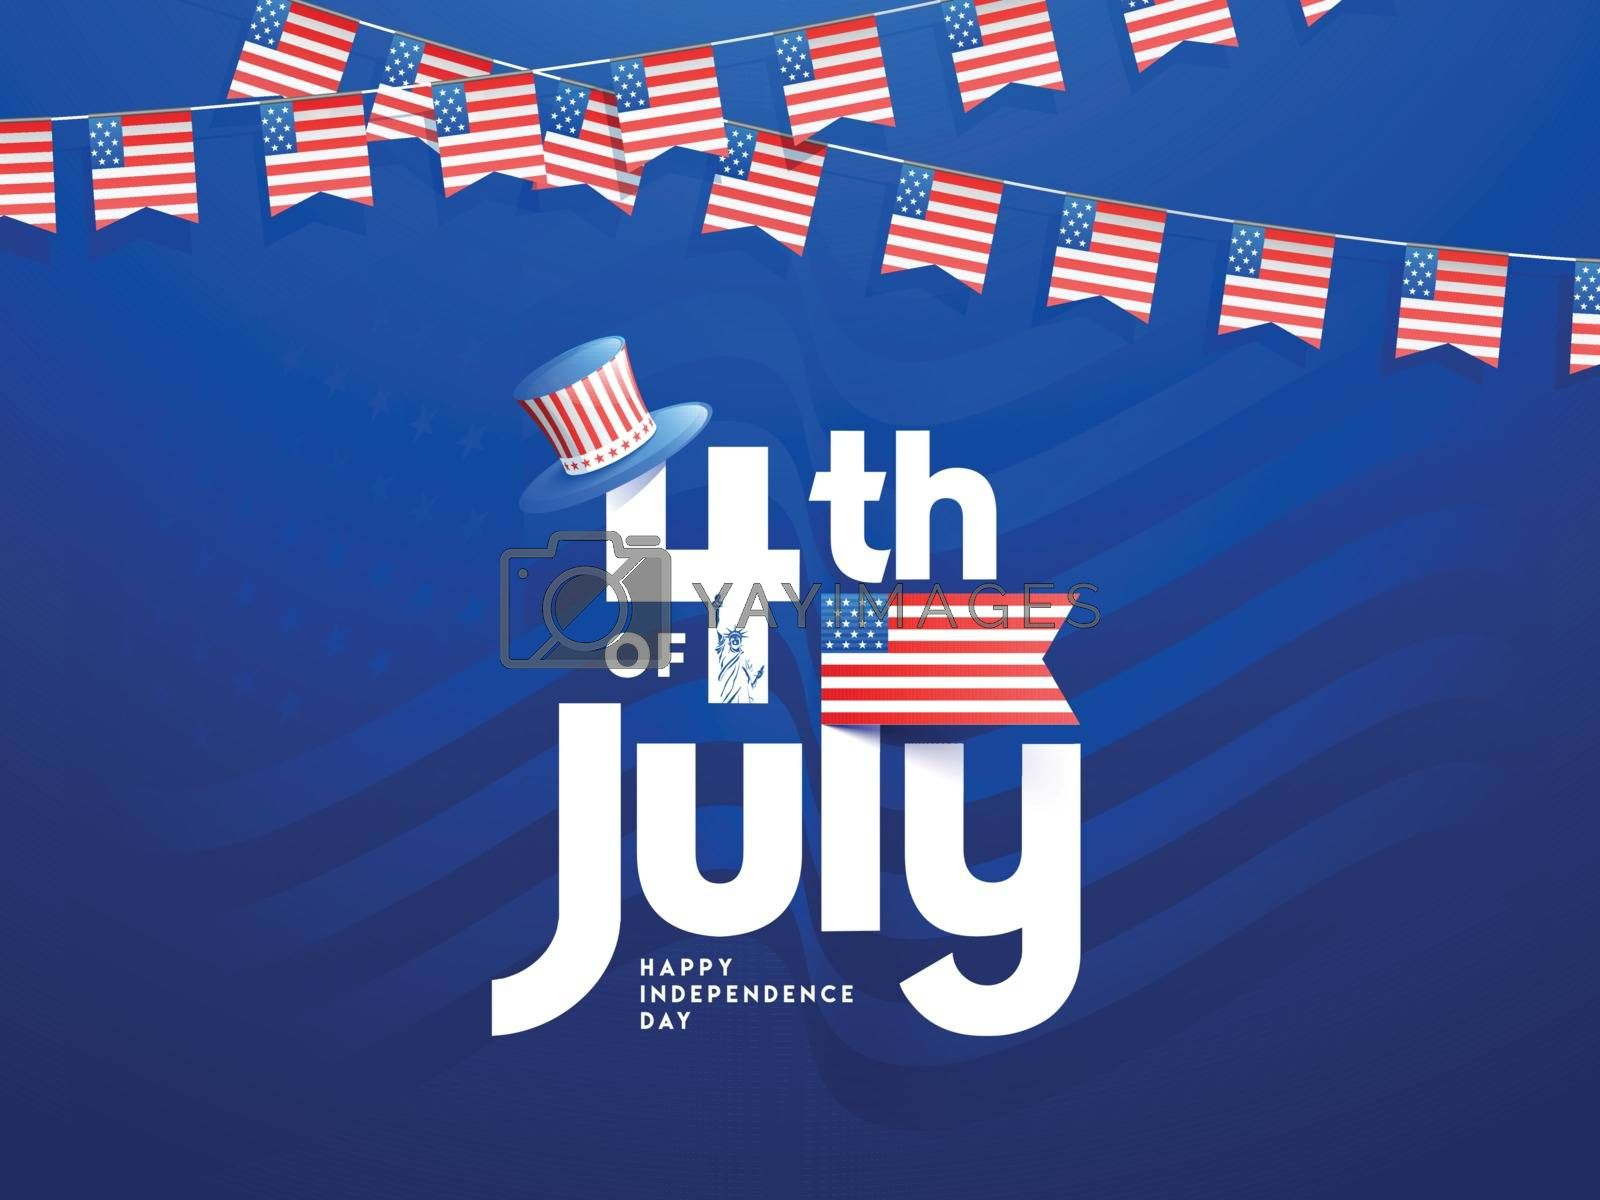 4th Of July text with uncle sam hat in USA flag color for Happy Independence Day banner or poster design.